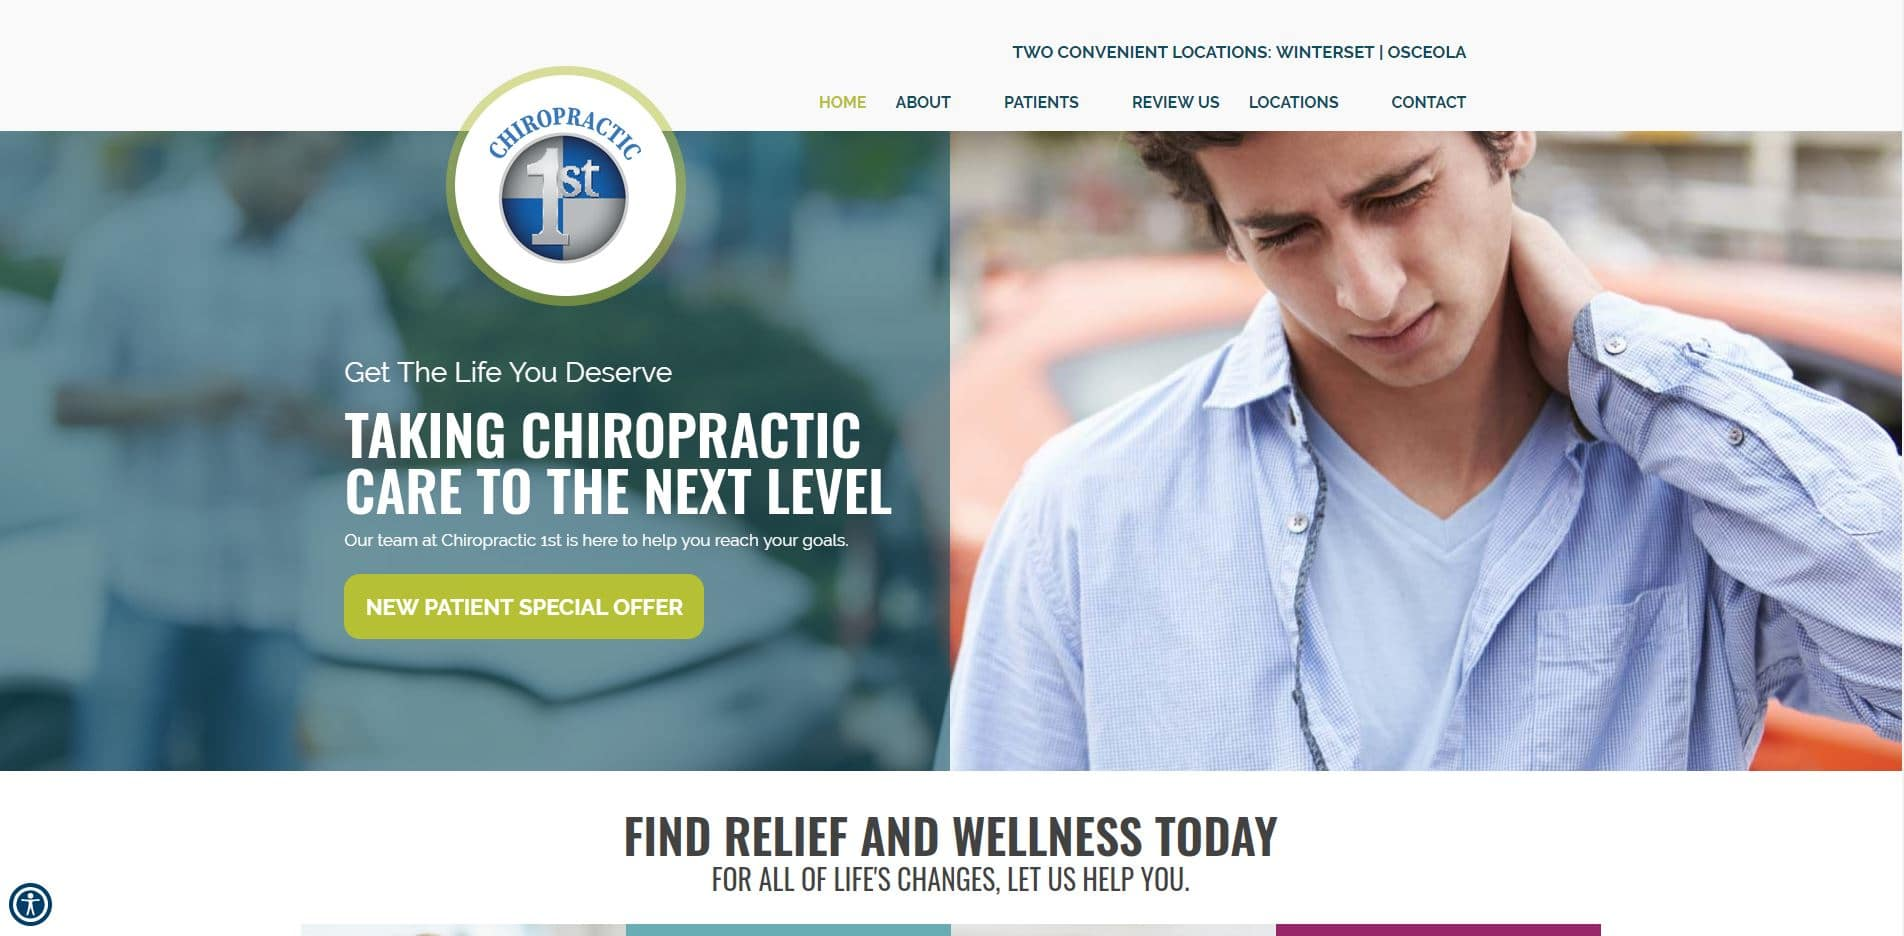 Chiropractor in Winterset